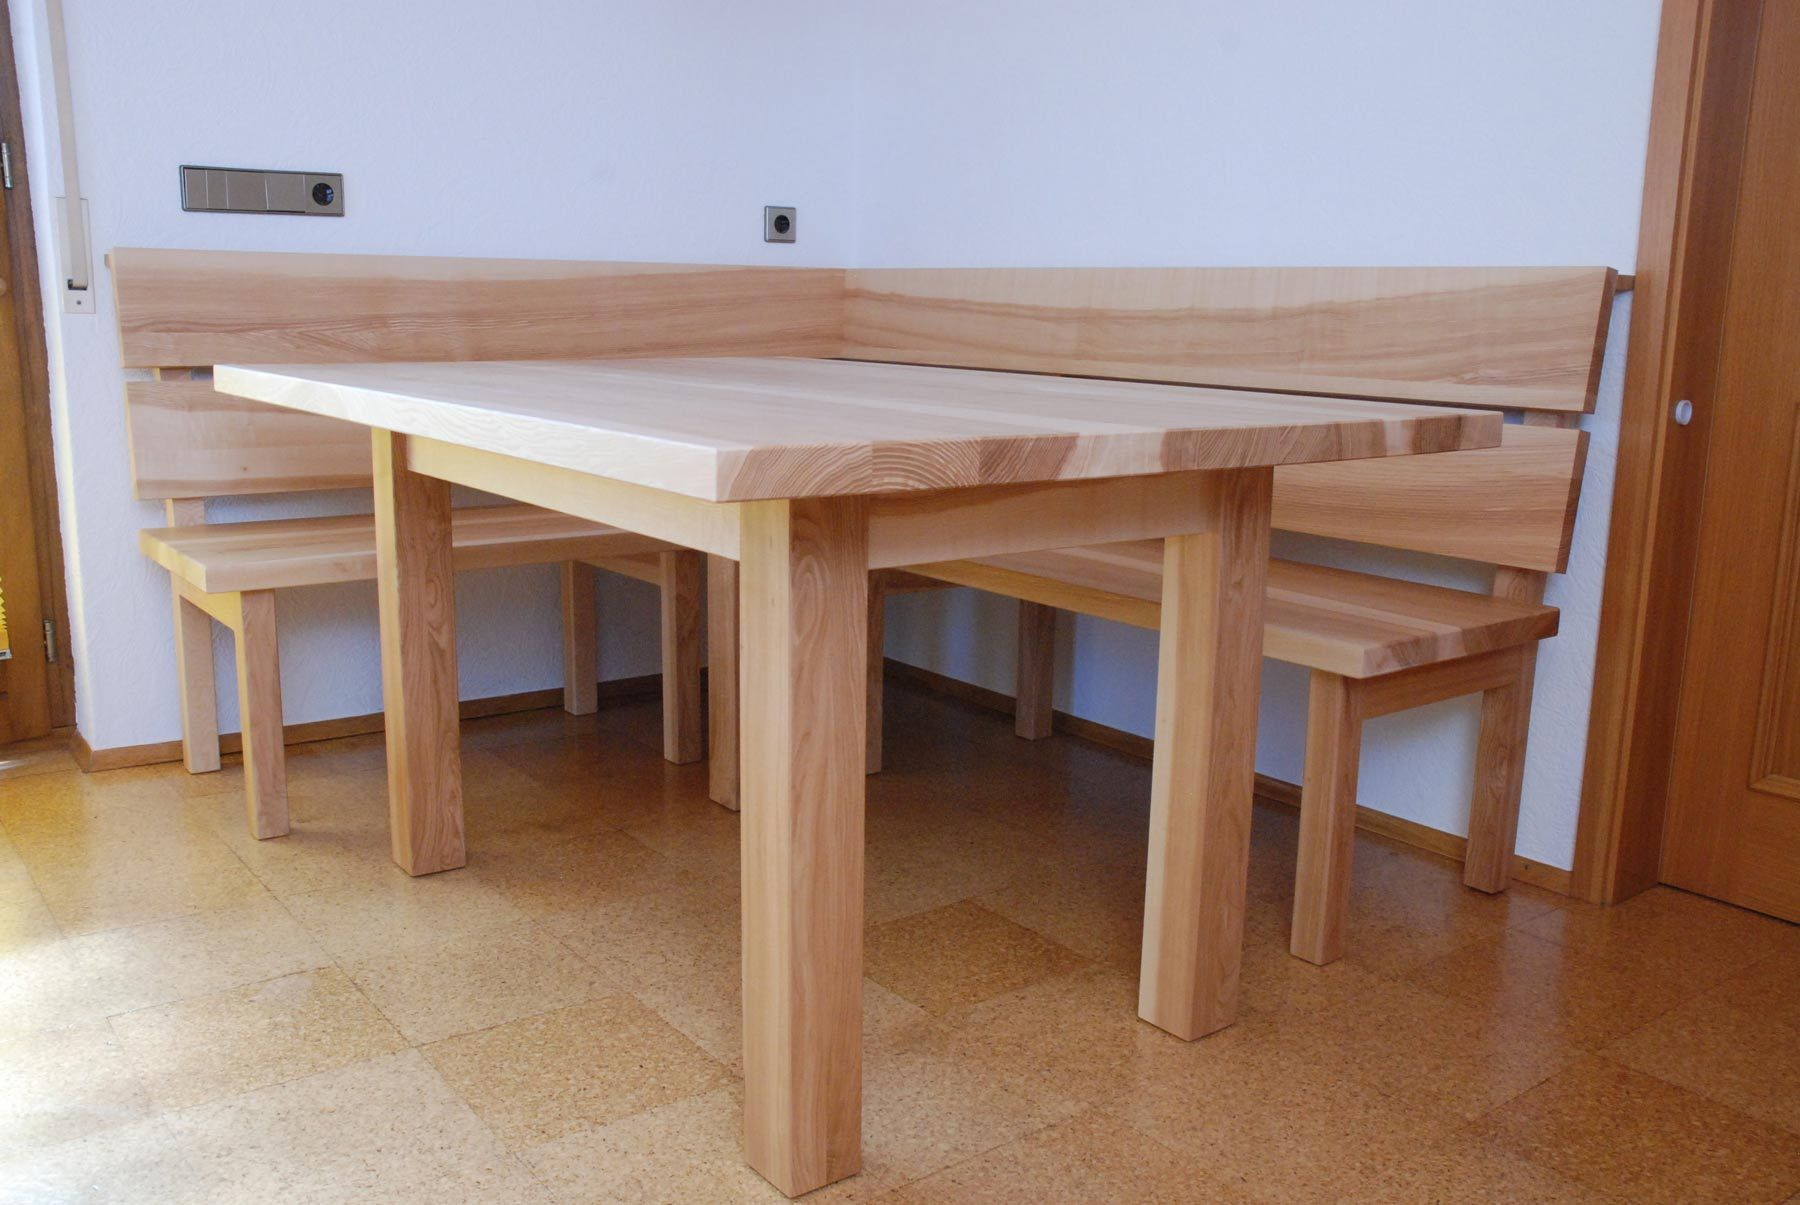 Eckbank Massivholz Landhaus Schön Eckbank Massiv Modern Deutsche In 2019 Table Kitchen